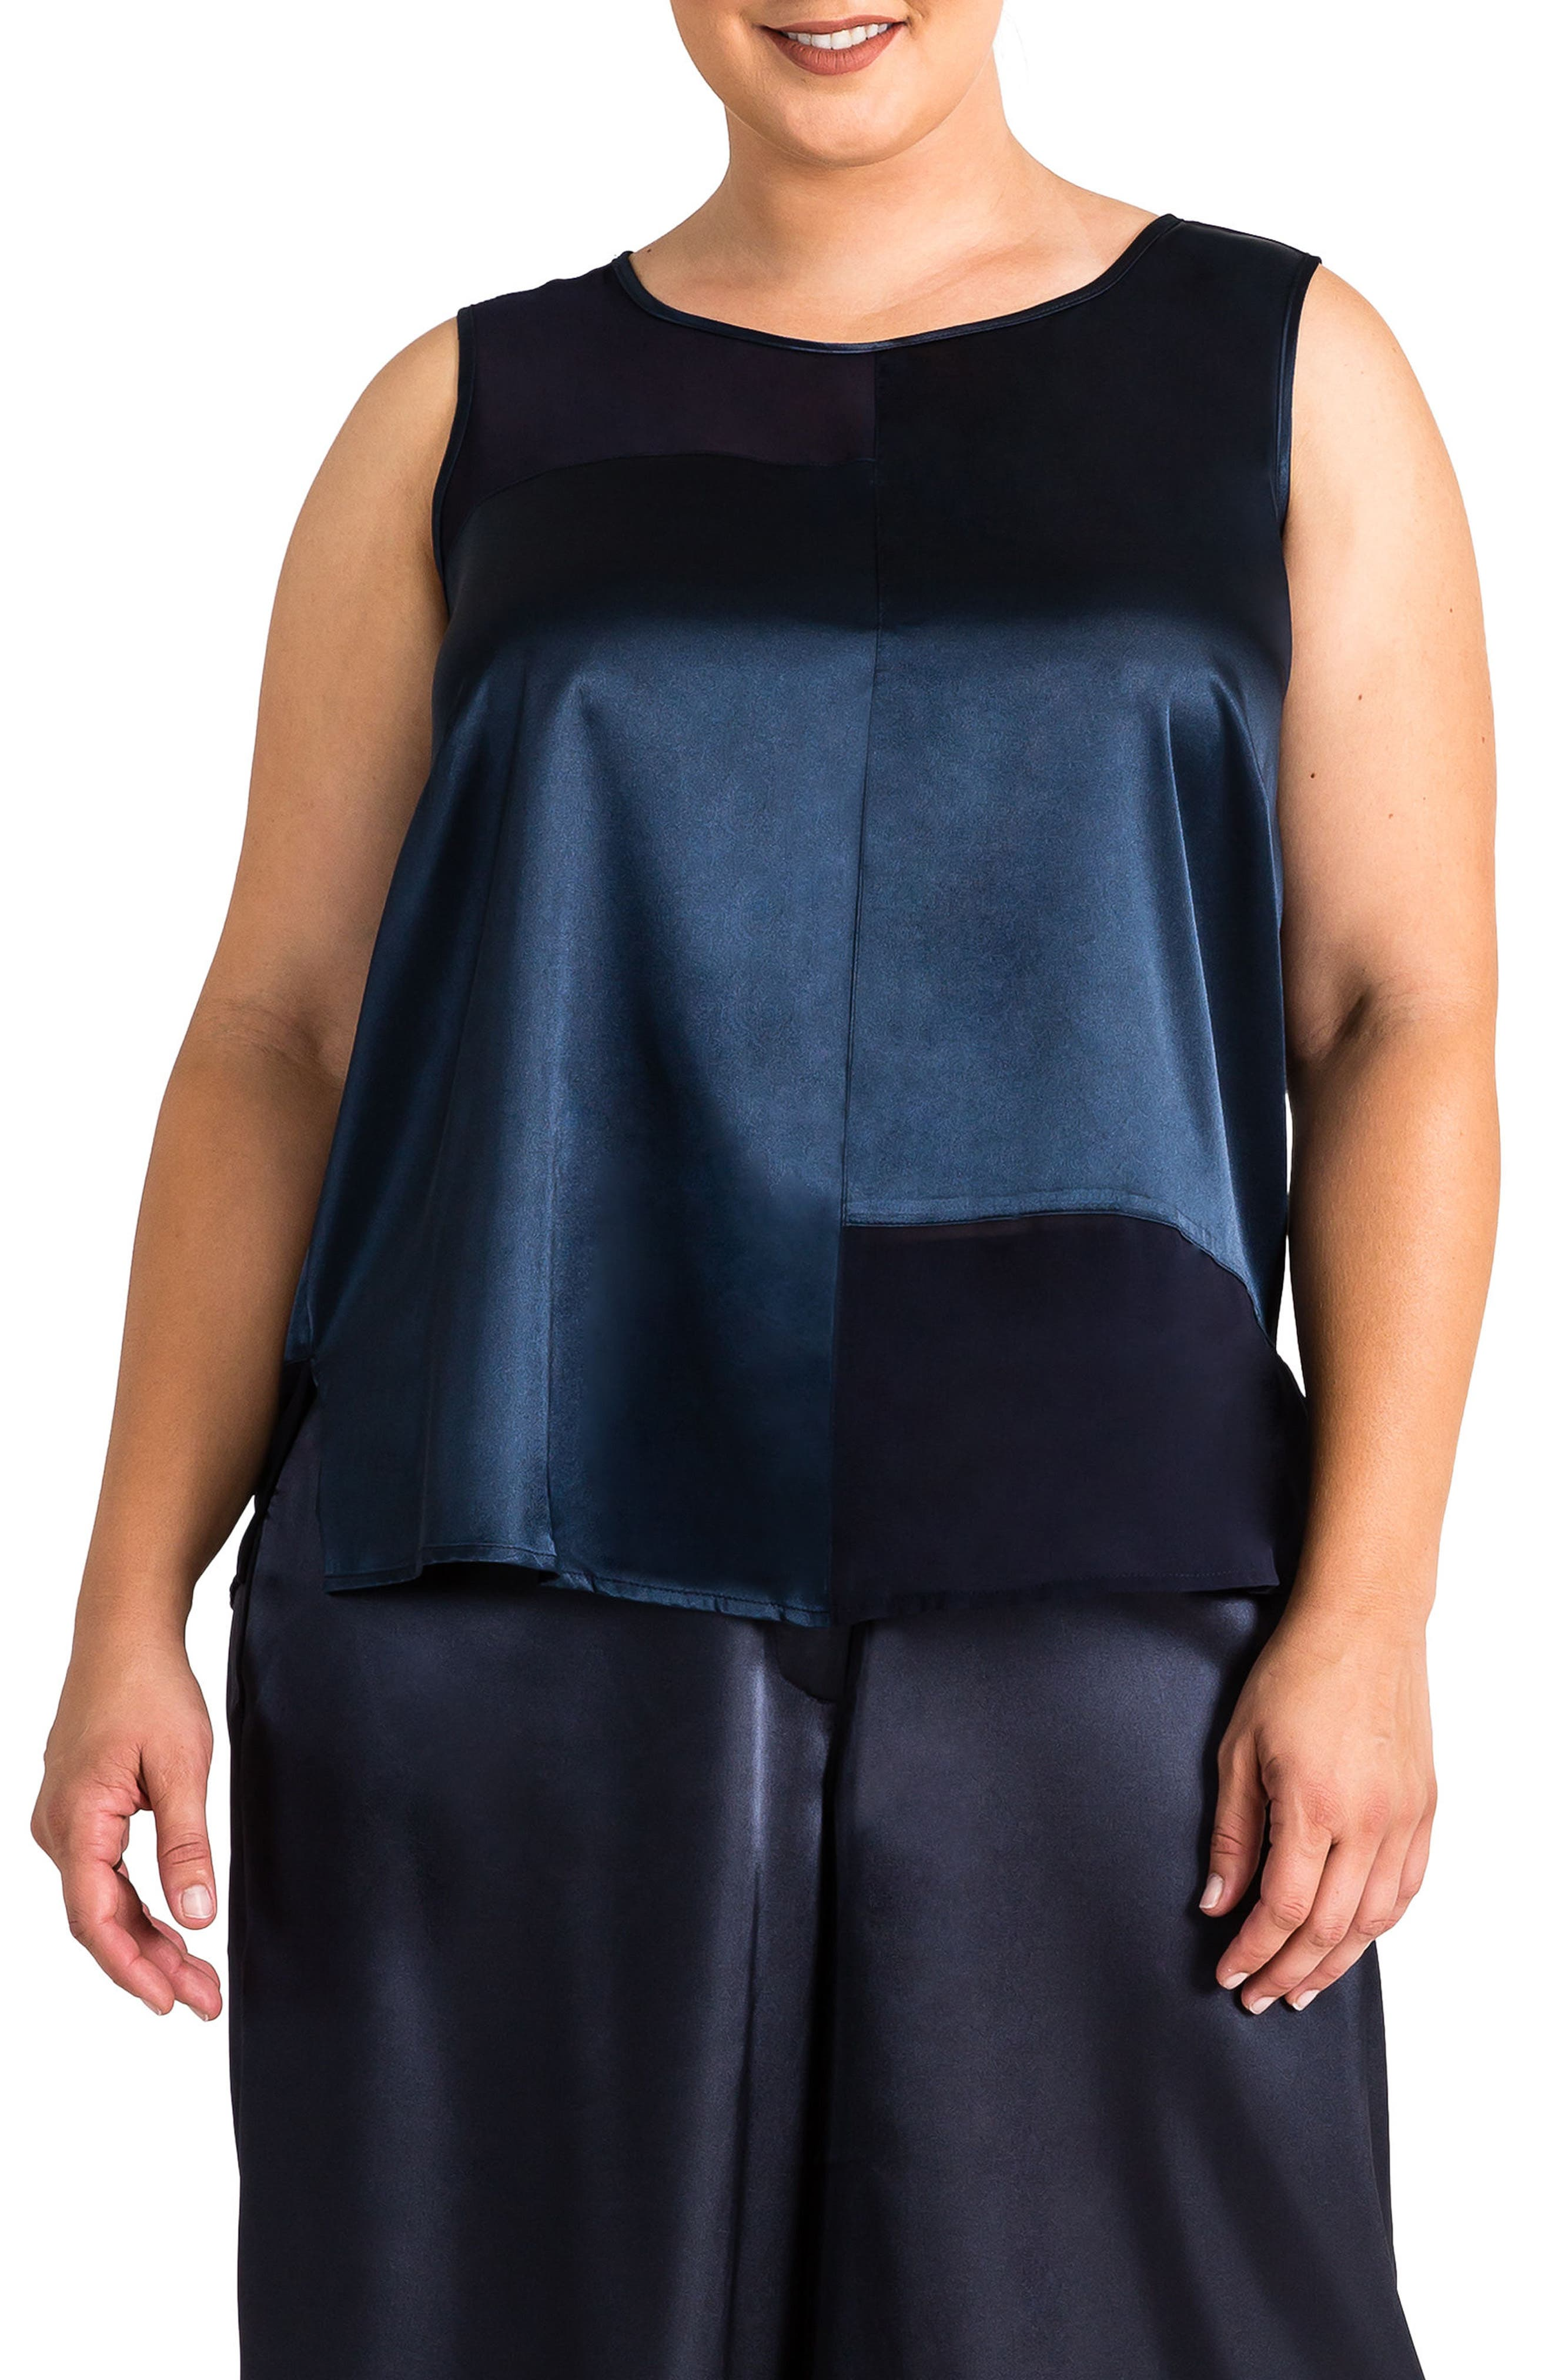 Jenny Sheer Inset Top,                             Main thumbnail 1, color,                             Midnight Blue